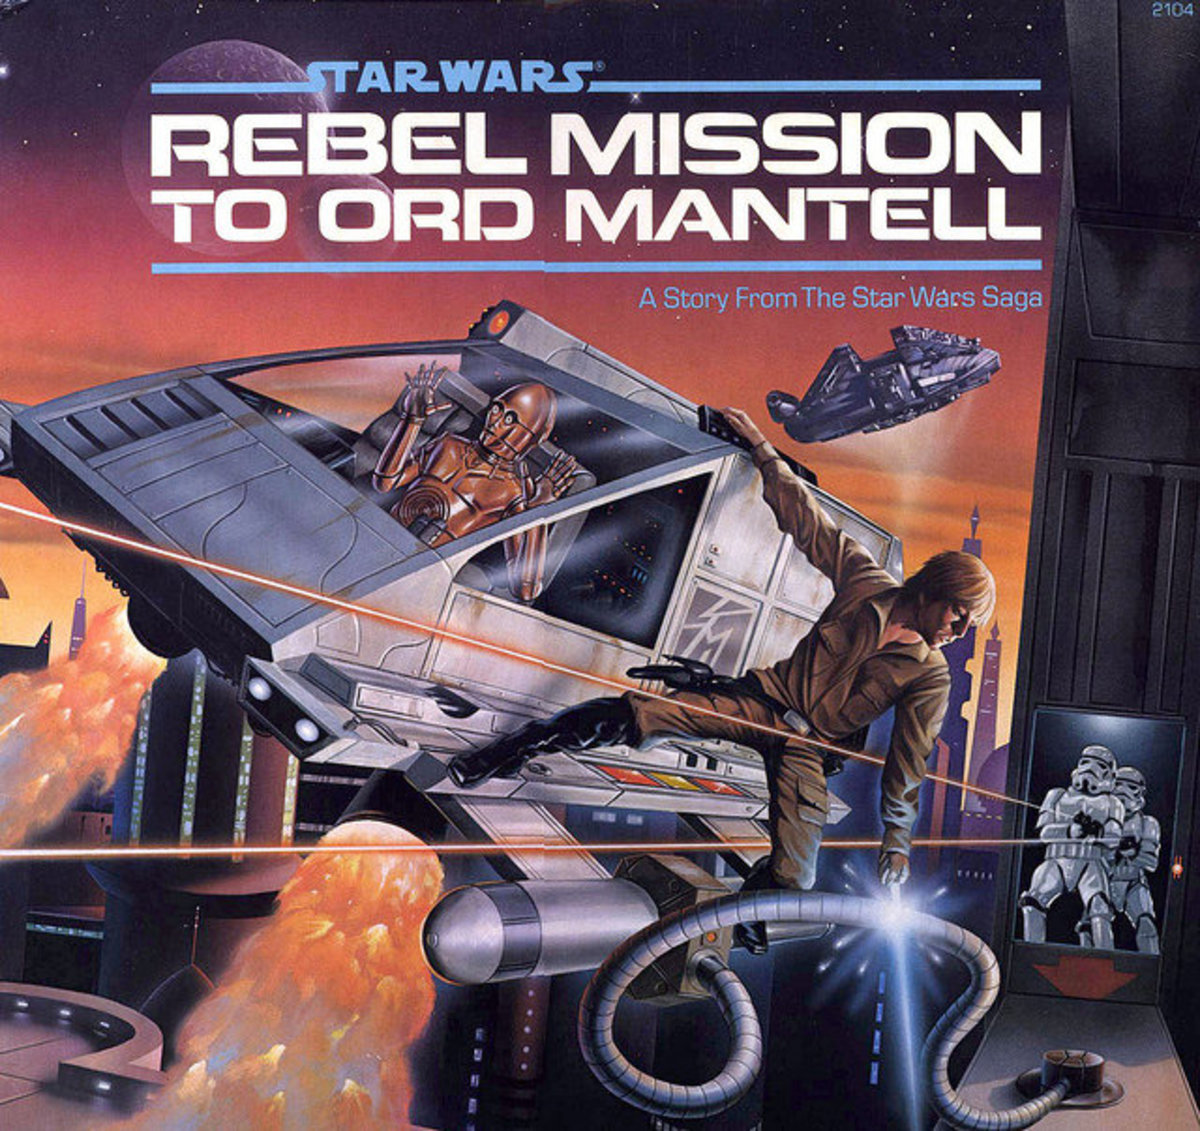 "Star Wars - Rebel Mission To Ord Mantell A Story From The Star Wars Saga Buena Vista Records ‎2104 12"" LP Vinyl Record (1983)"